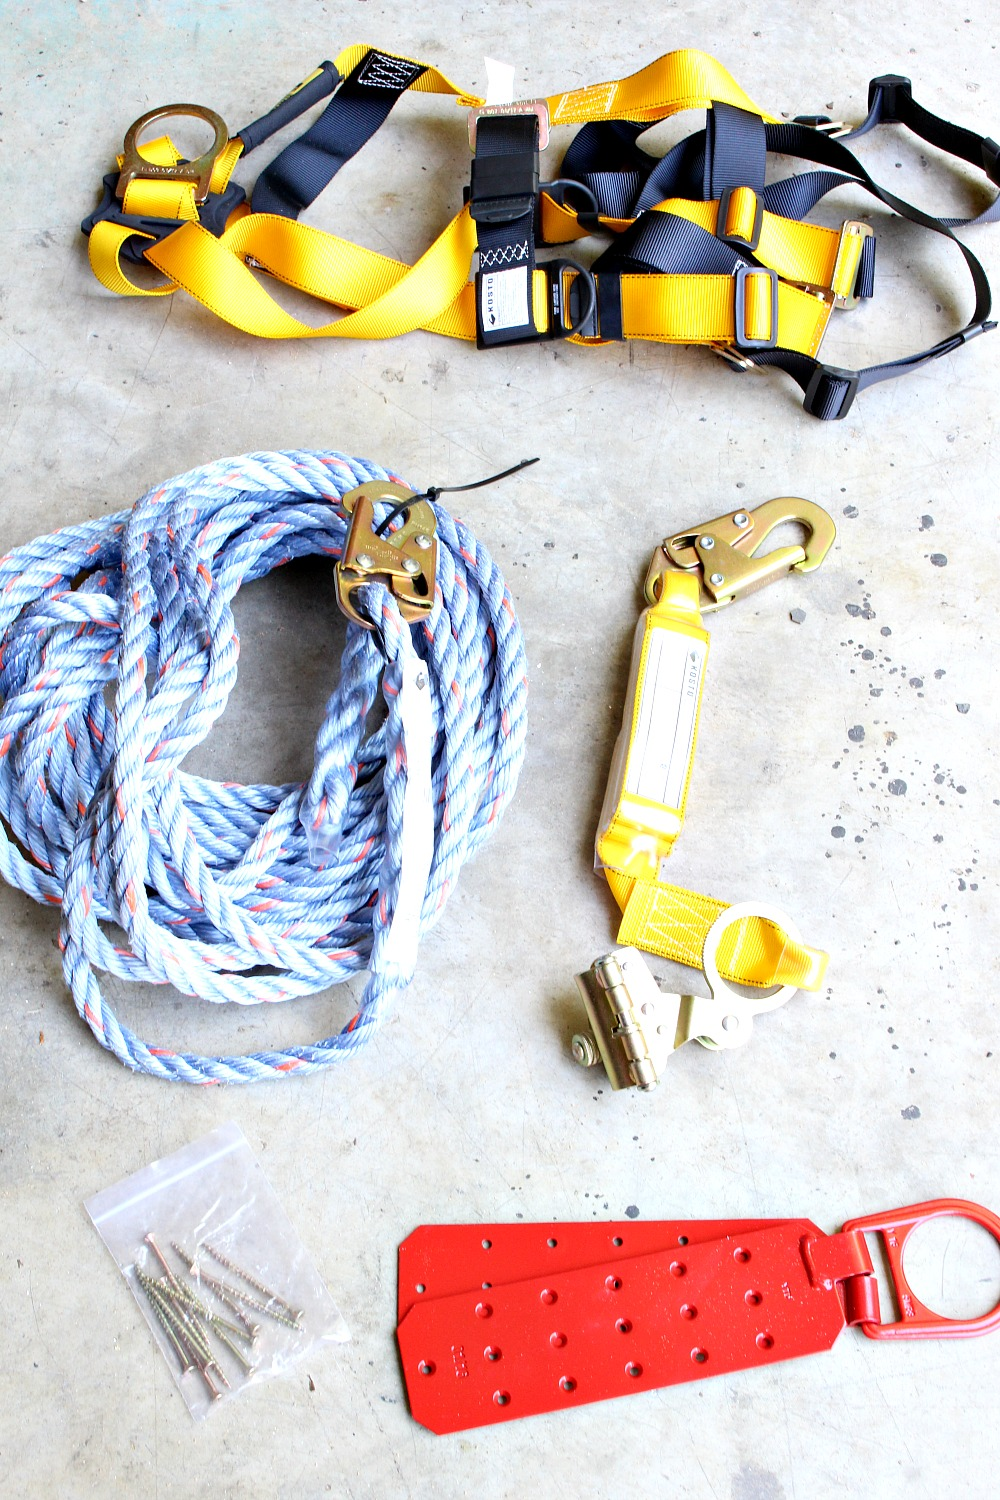 Roofer Safety Kit Review